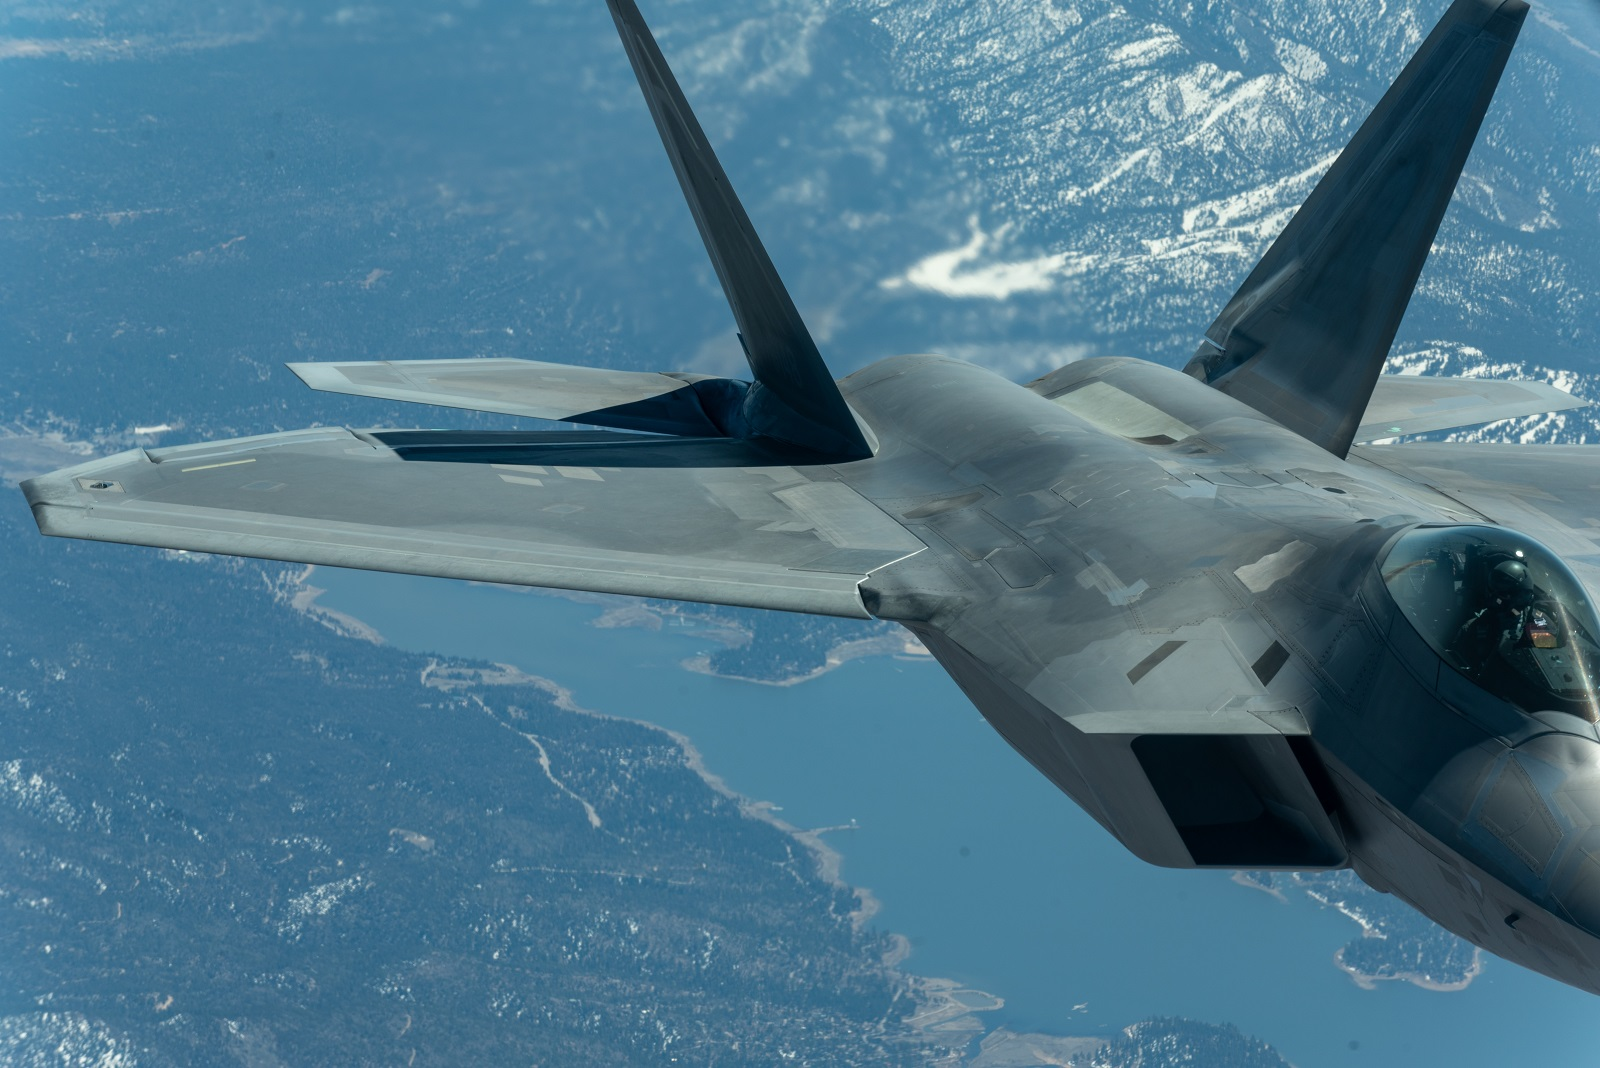 Bad News for China: J-20 Stealth Fighters Can't Touch an F-22s or F-35